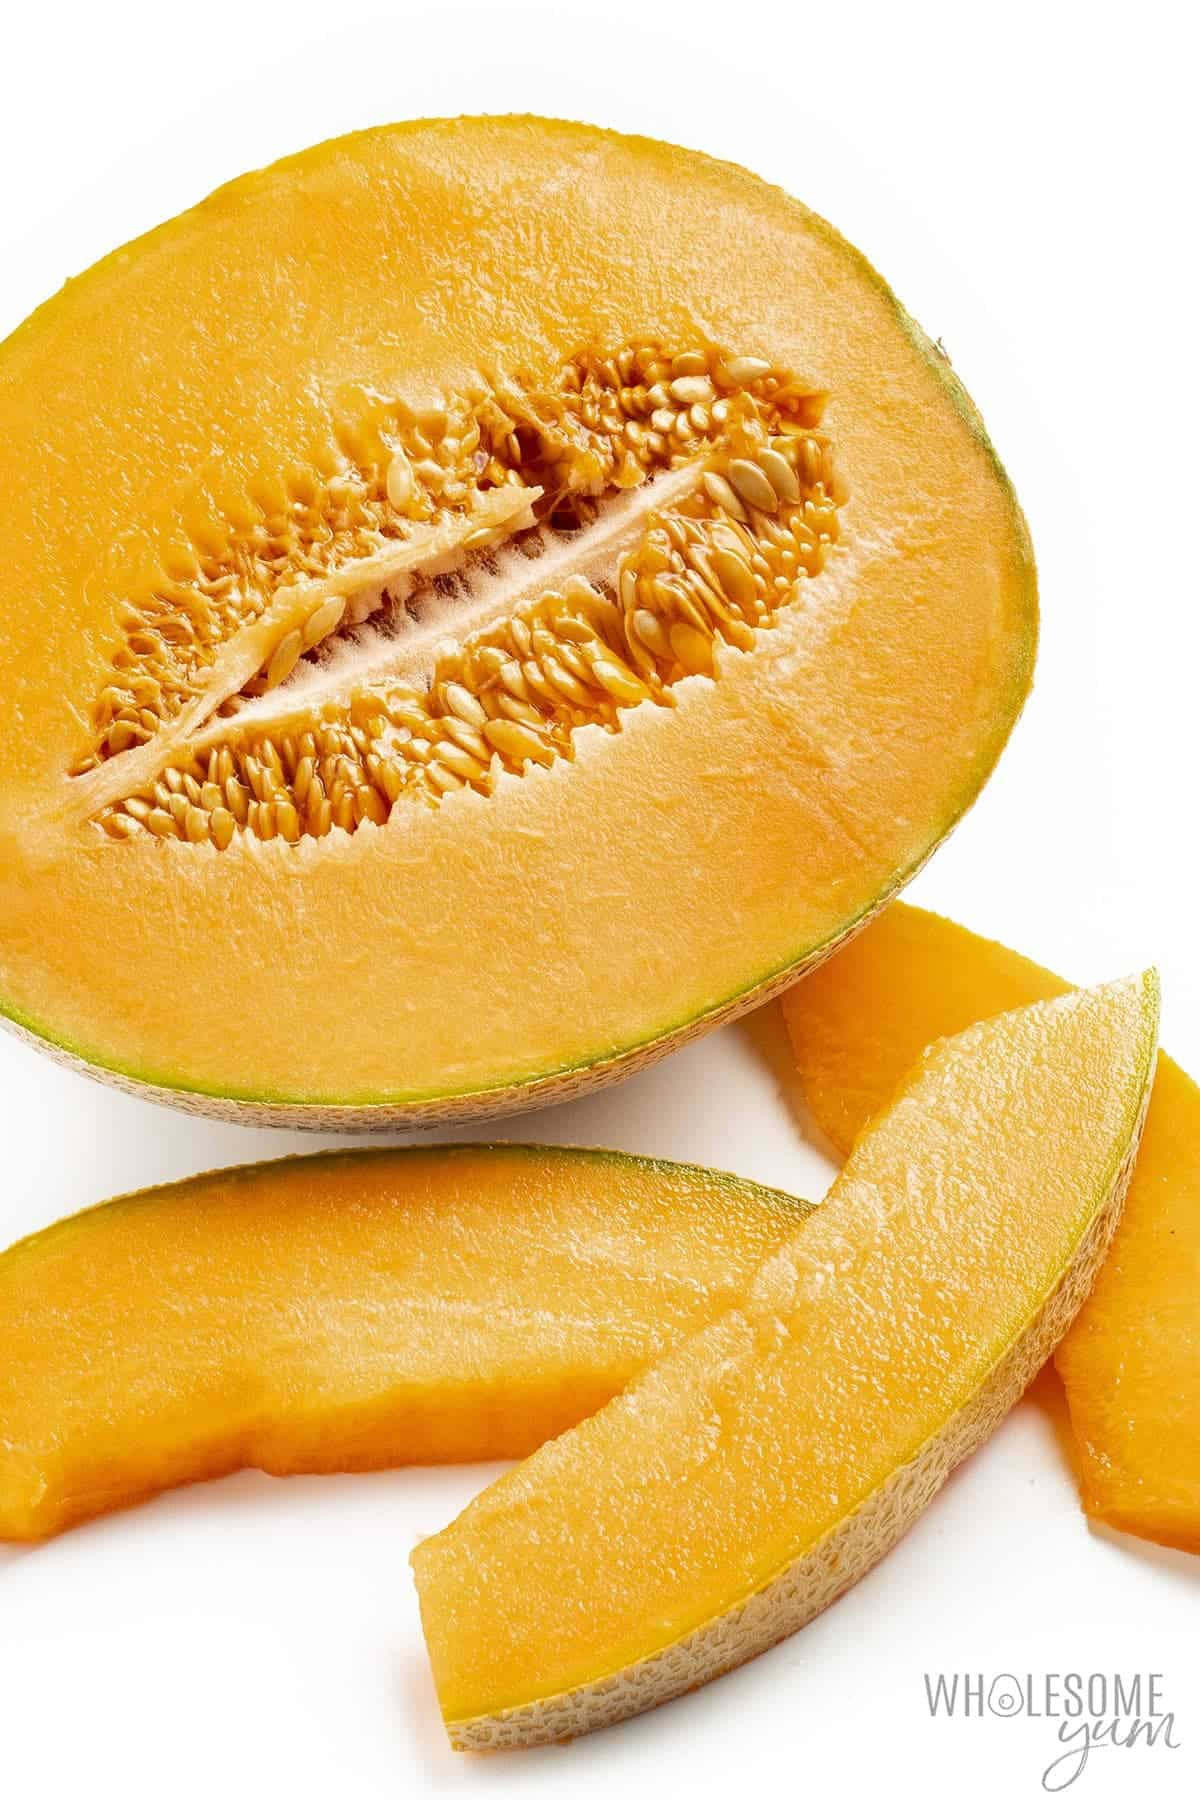 Are carbs in cantaloupe high? This sliced cantaloupe is too high in carbs to be keto friendly.